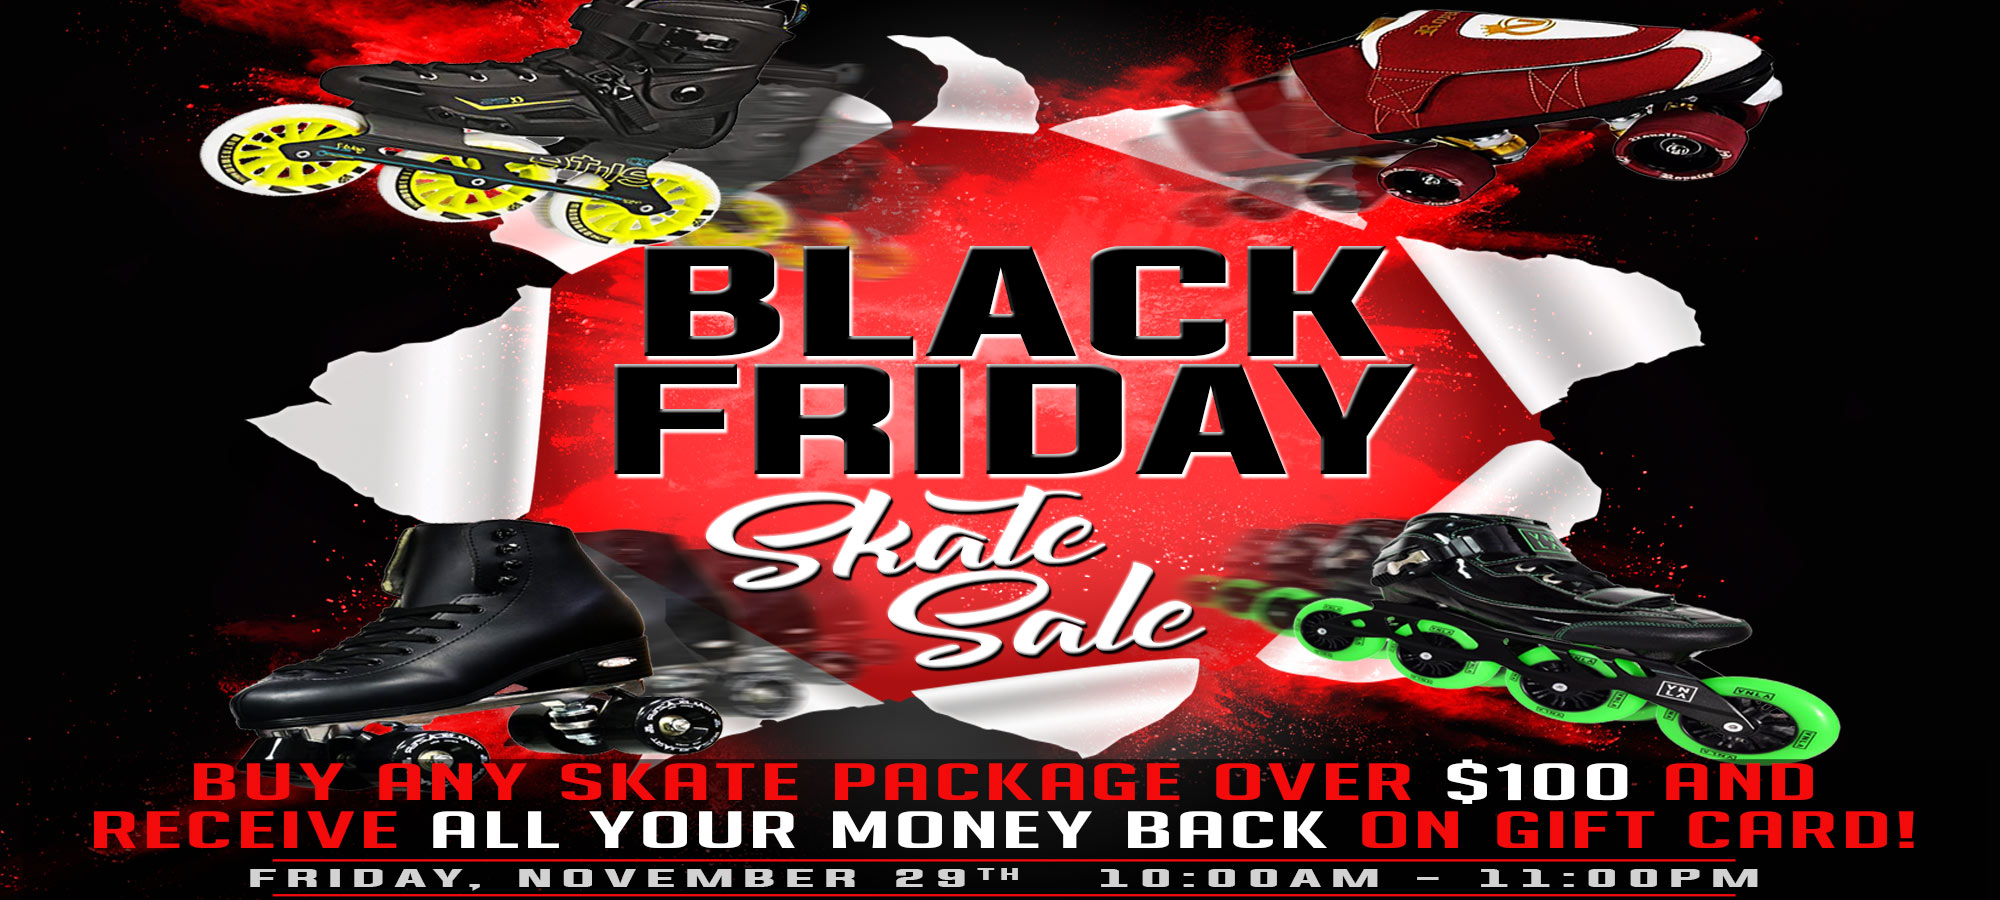 Black-Friday-Skate-Sale-2019